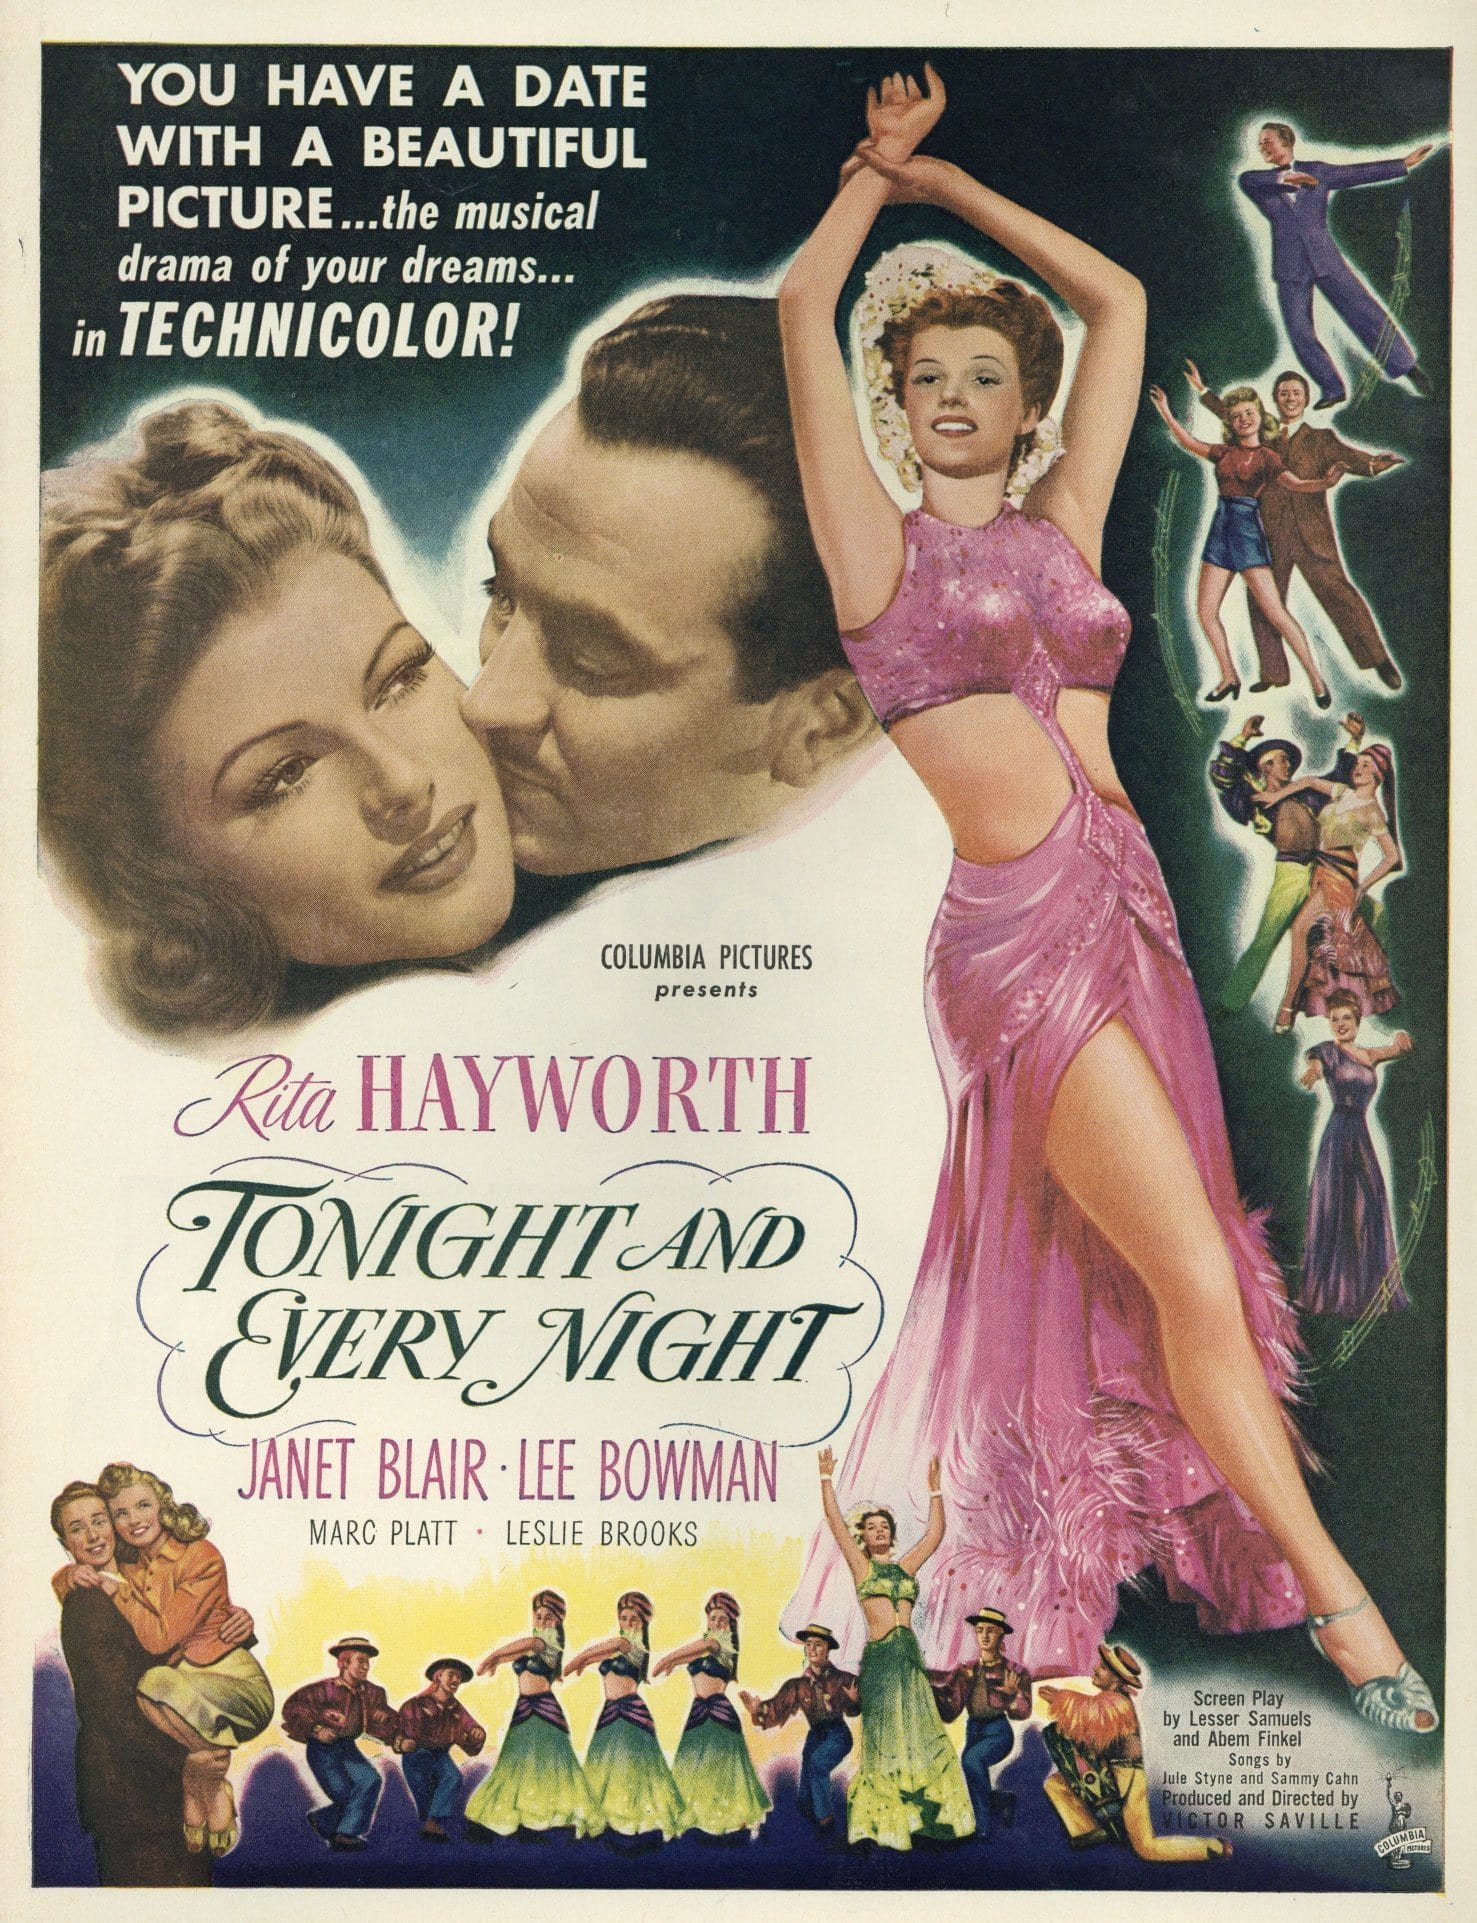 Tonight And Every Night 1945 Movie Advertisement - Rita Hayworth Memorabilia - Classic Movie Ad